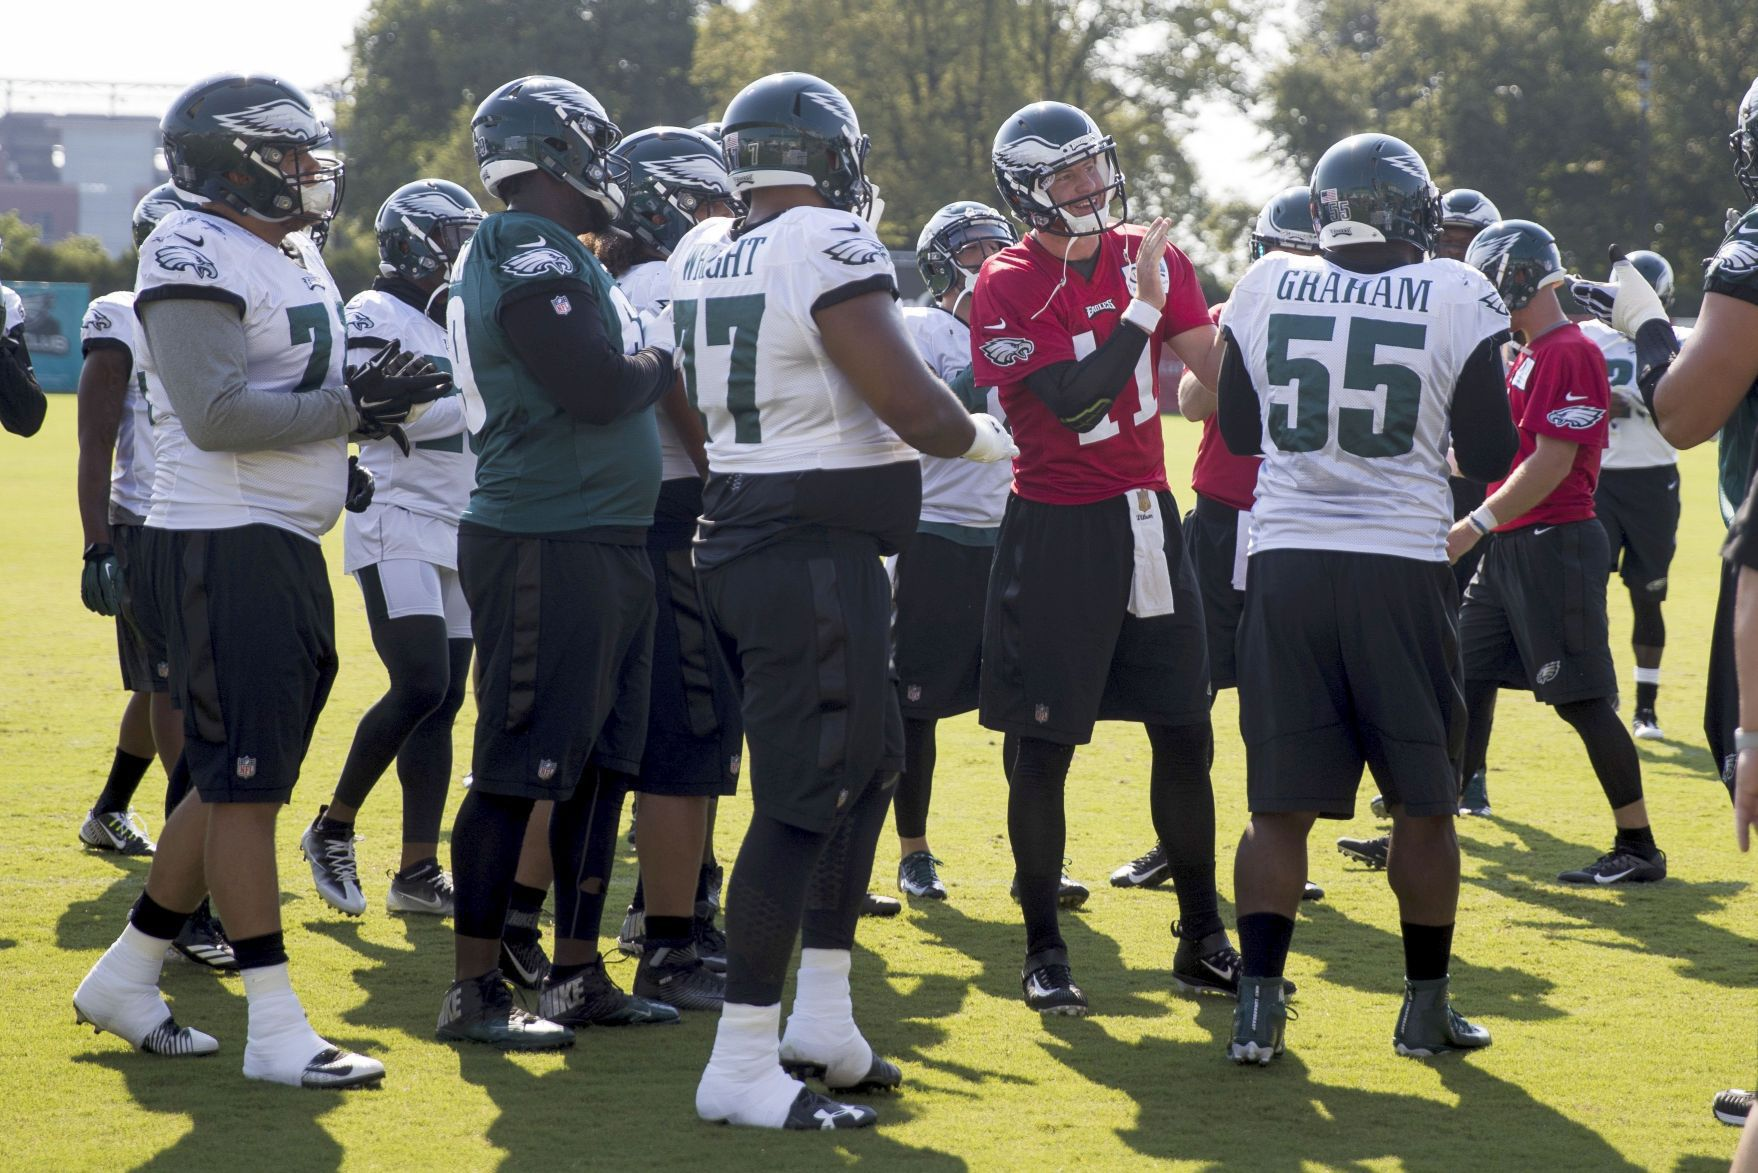 Will Eagles' Alshon Jeffery play at all this preseason?